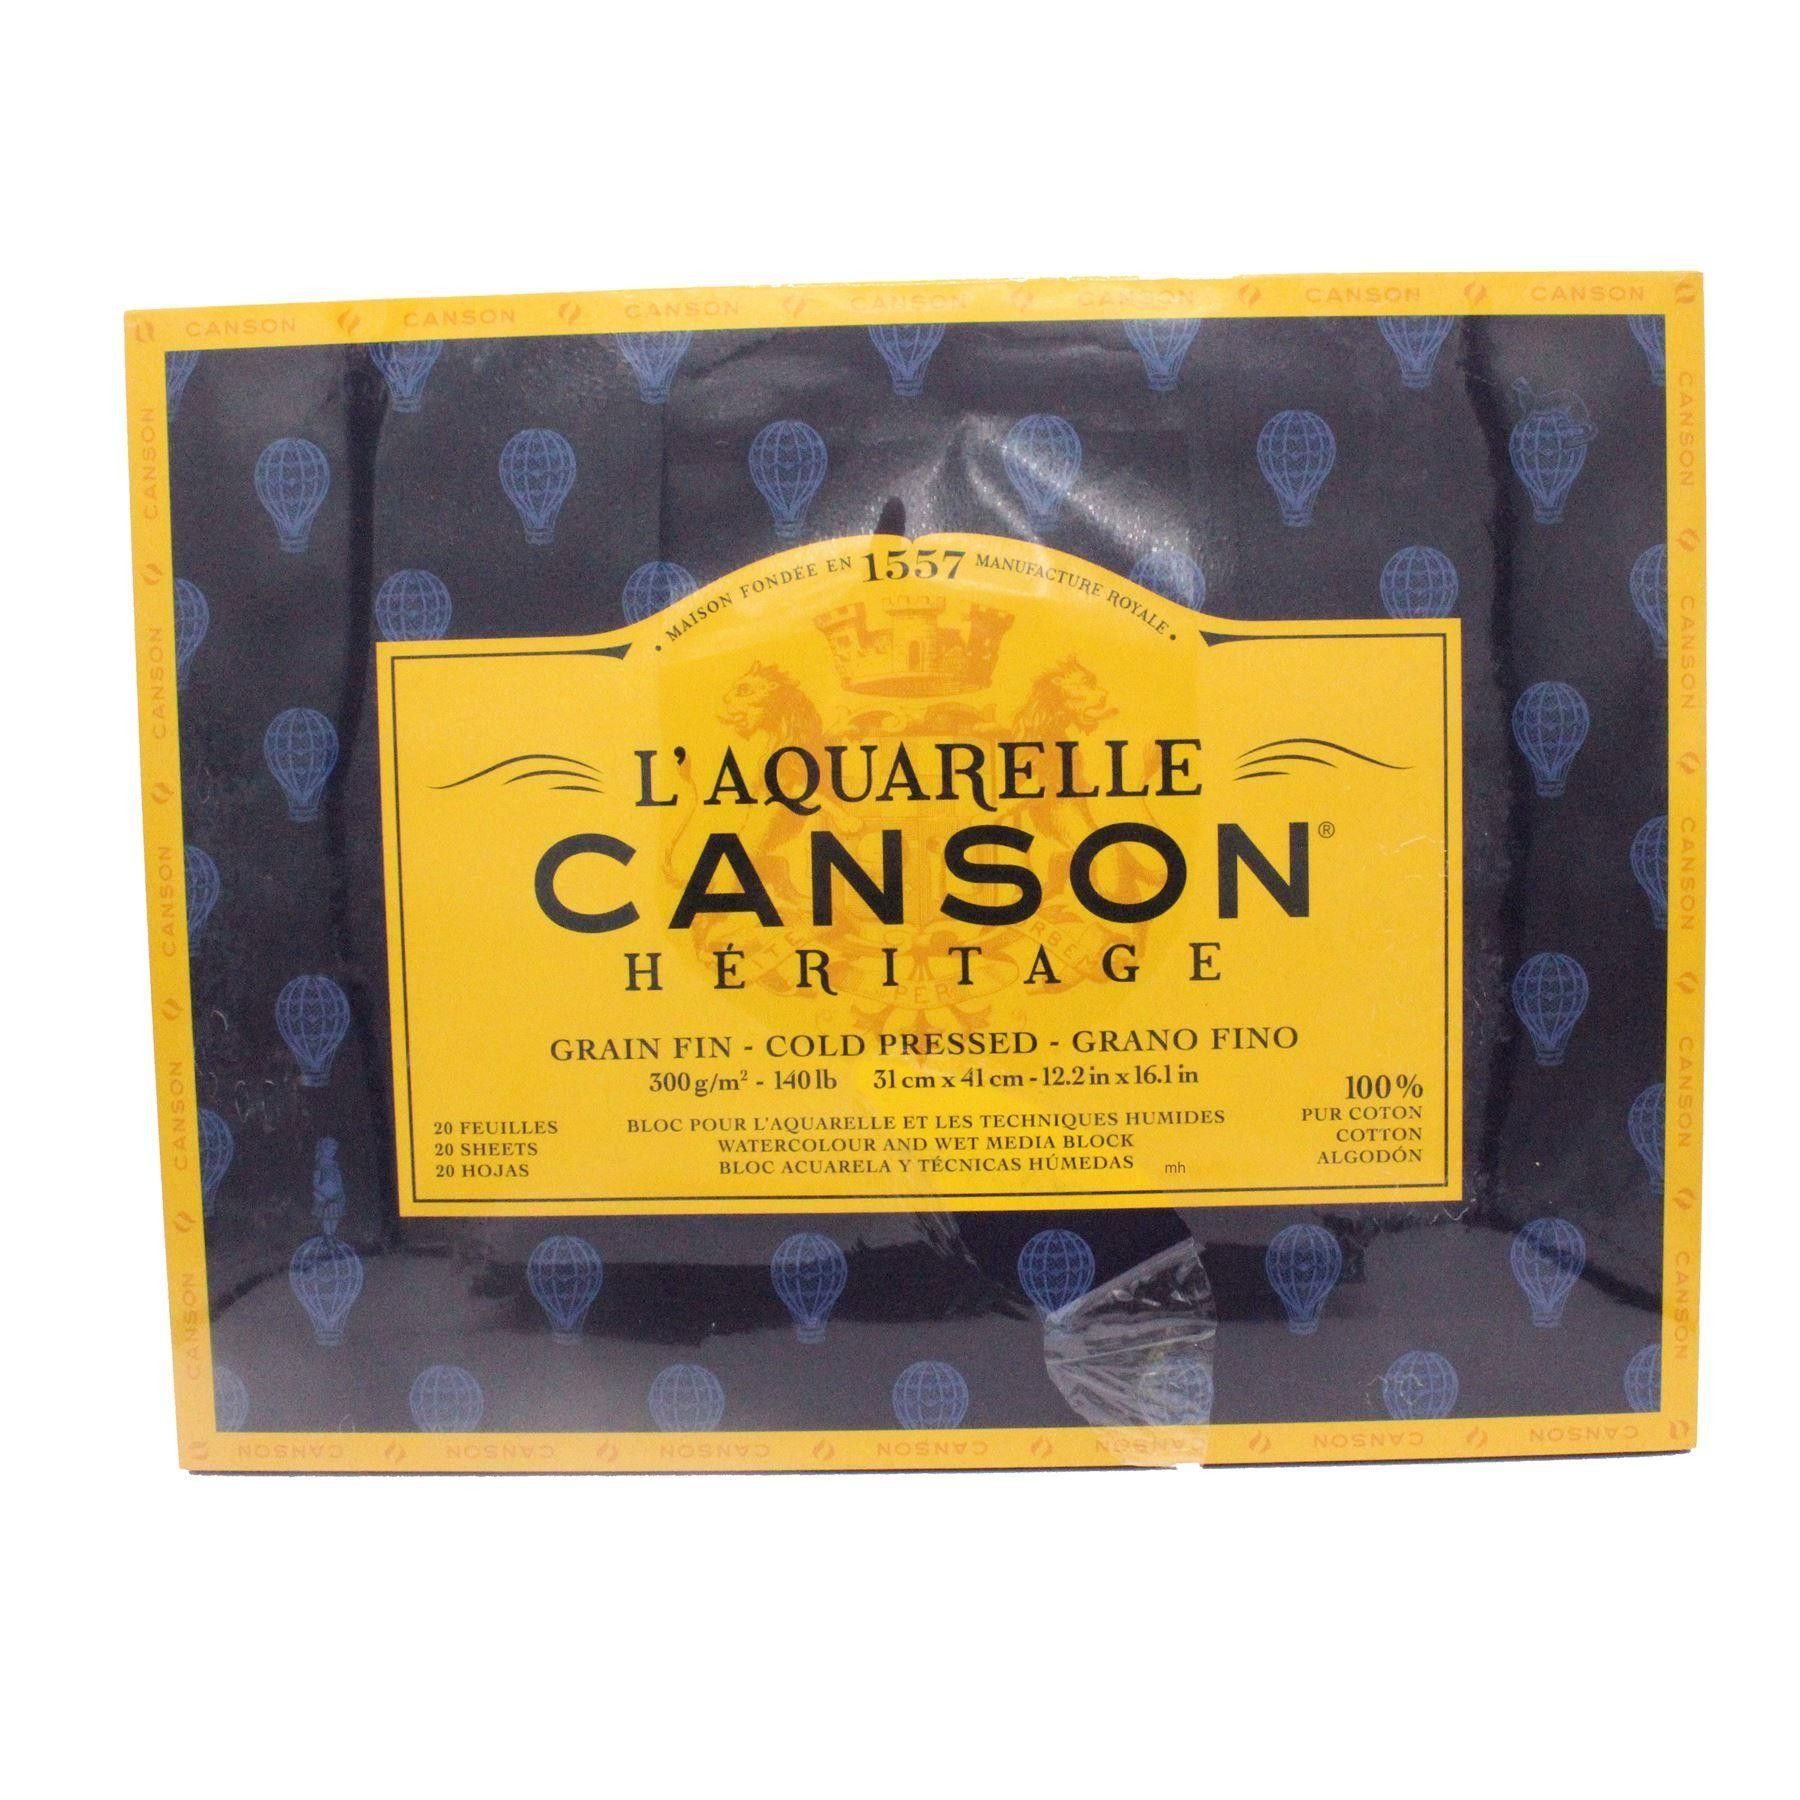 Canson L Aquarelle Heritage Cold Press Watercolour Block 300gsm